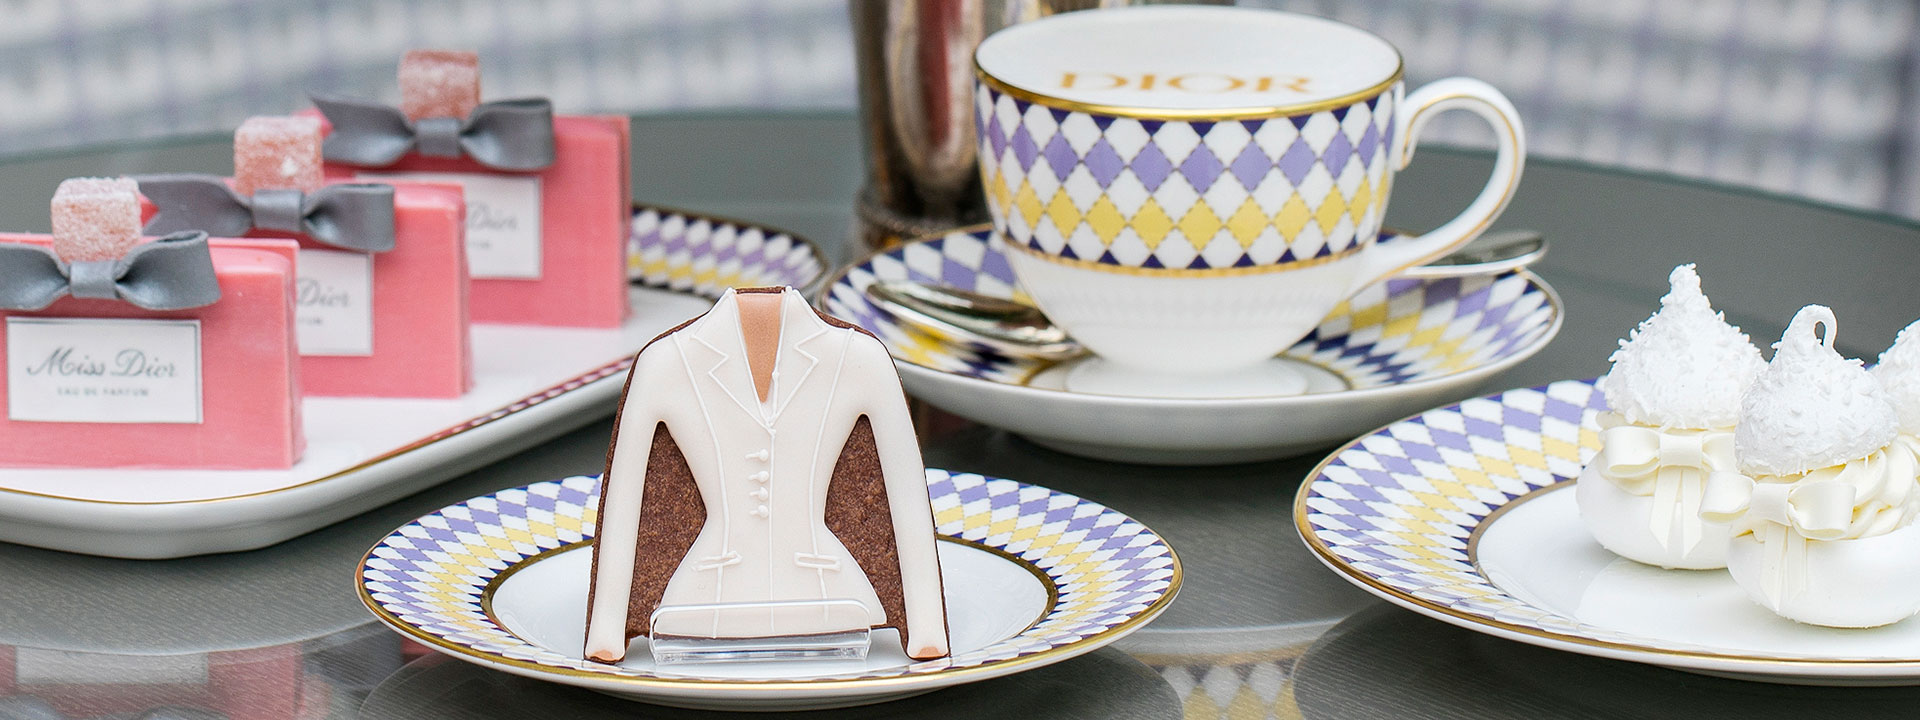 A Dior-Inspired Mother's Day Treat